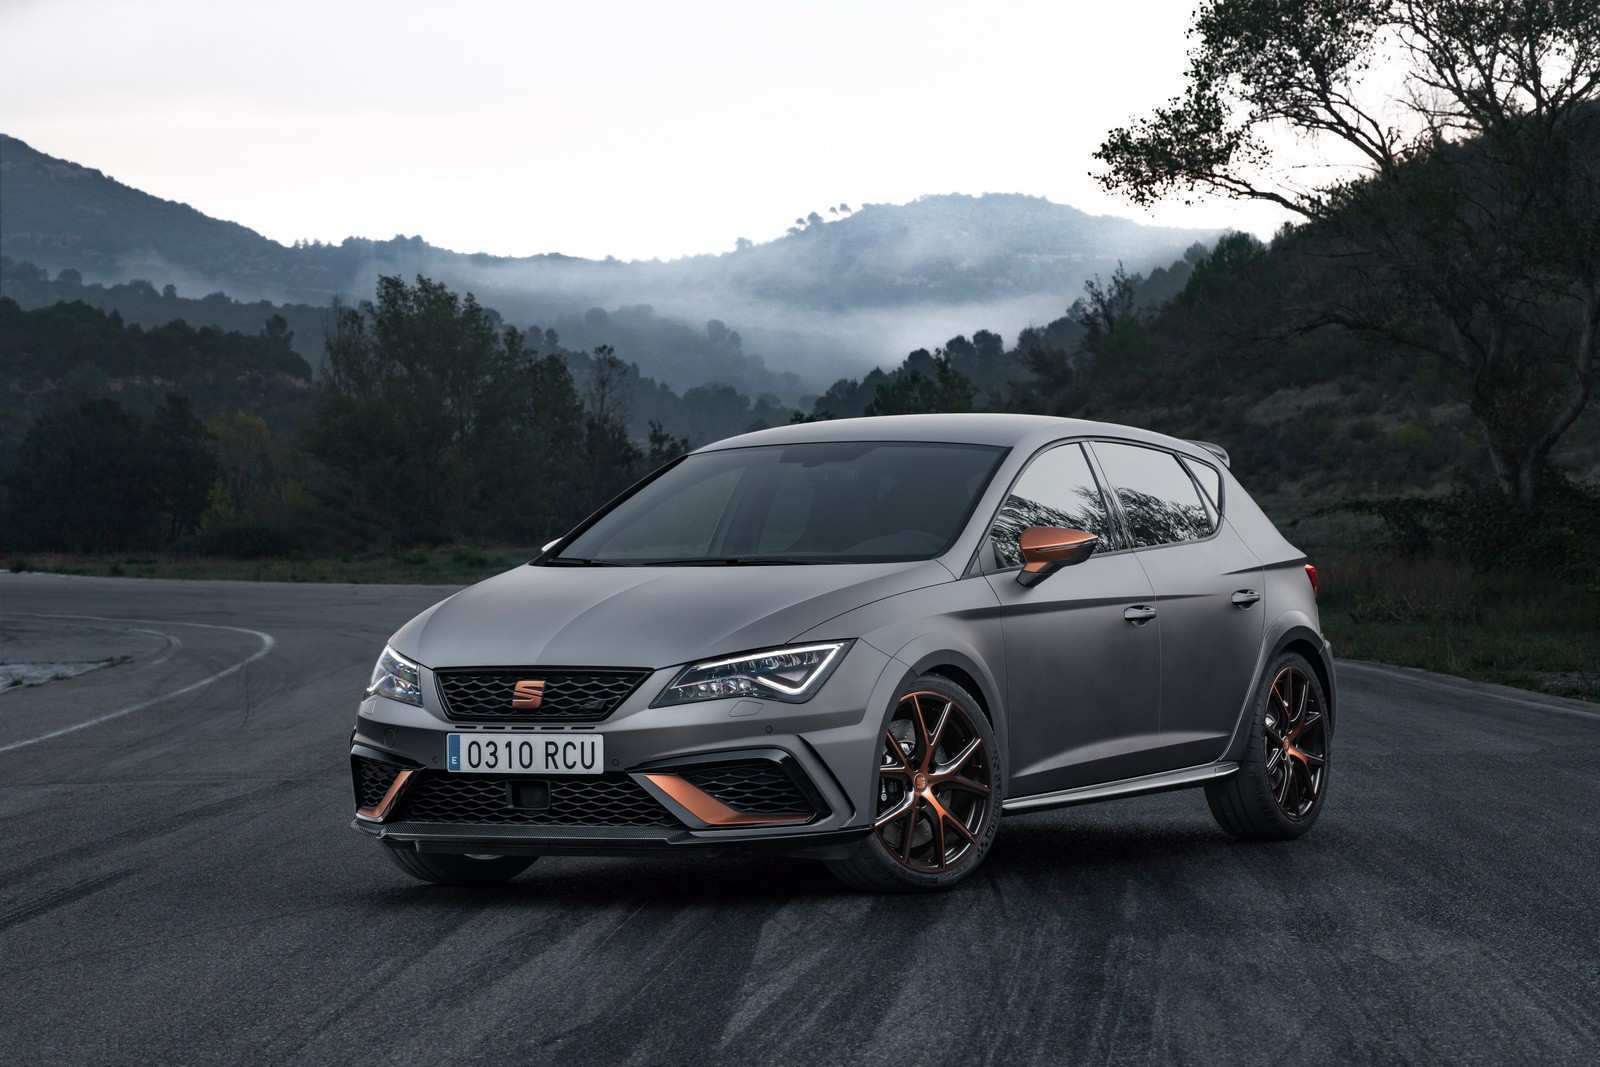 79 A 2019 Seat Ibiza Research New